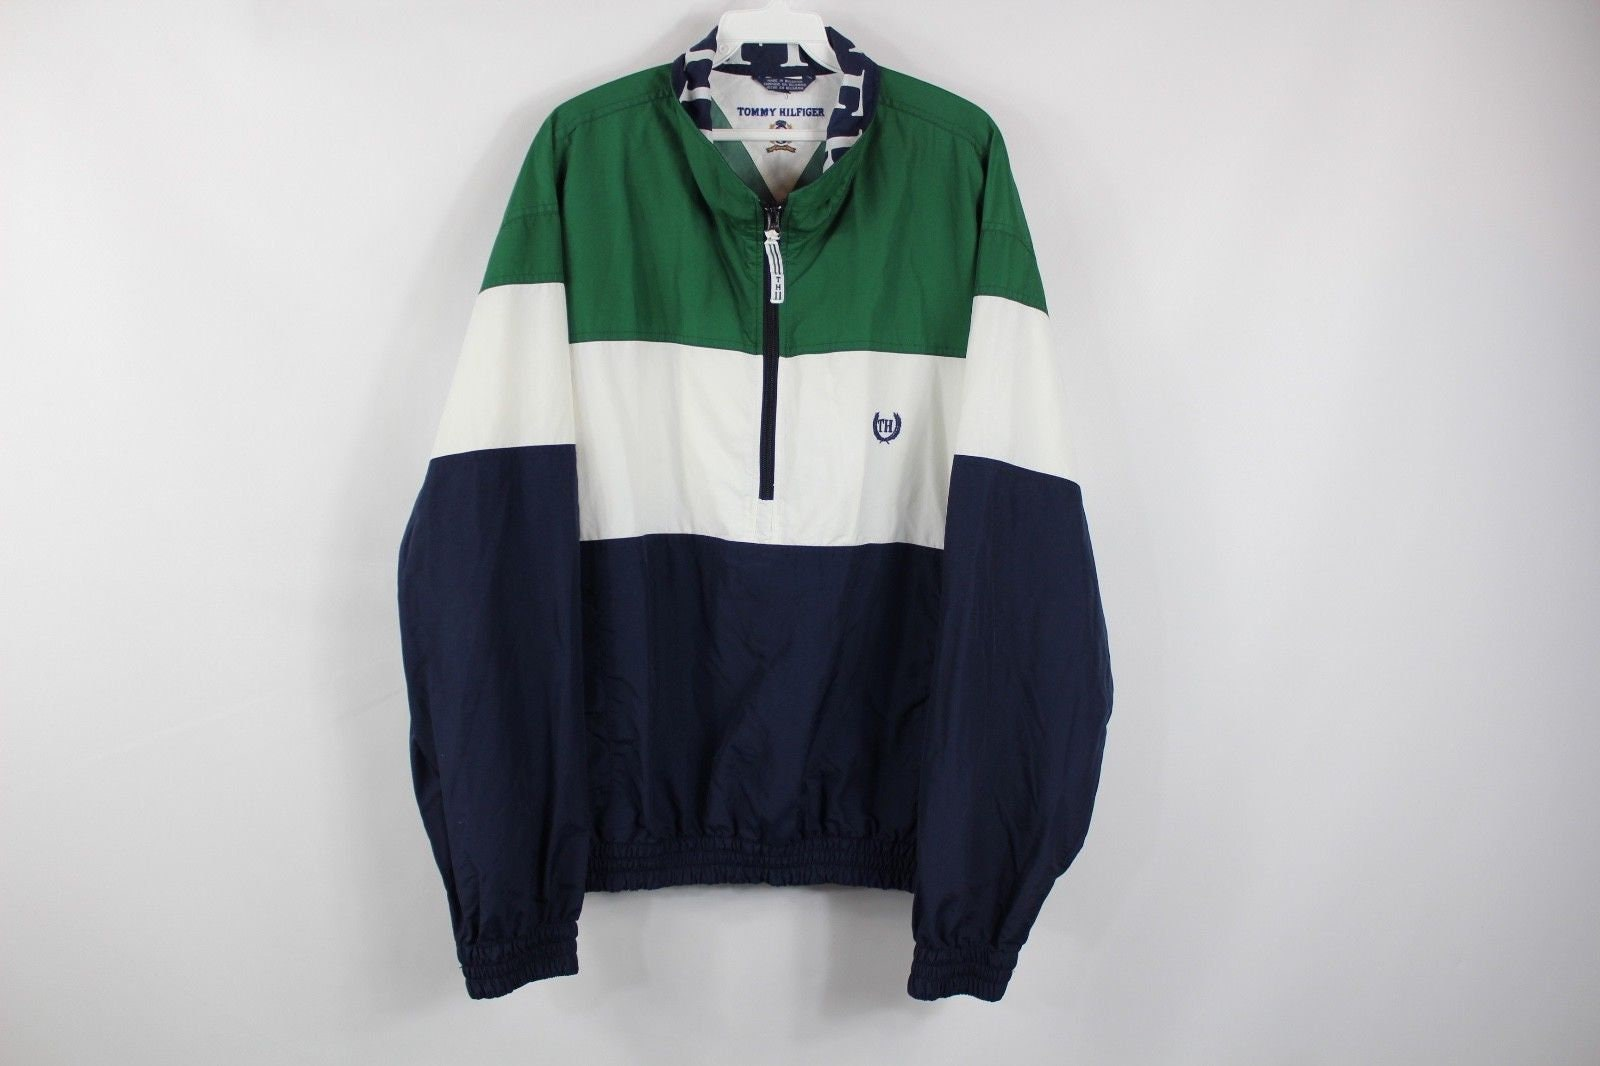 e6c4392260 90s Tommy Hilfiger Spell Out Color Block Half Zip Pullover